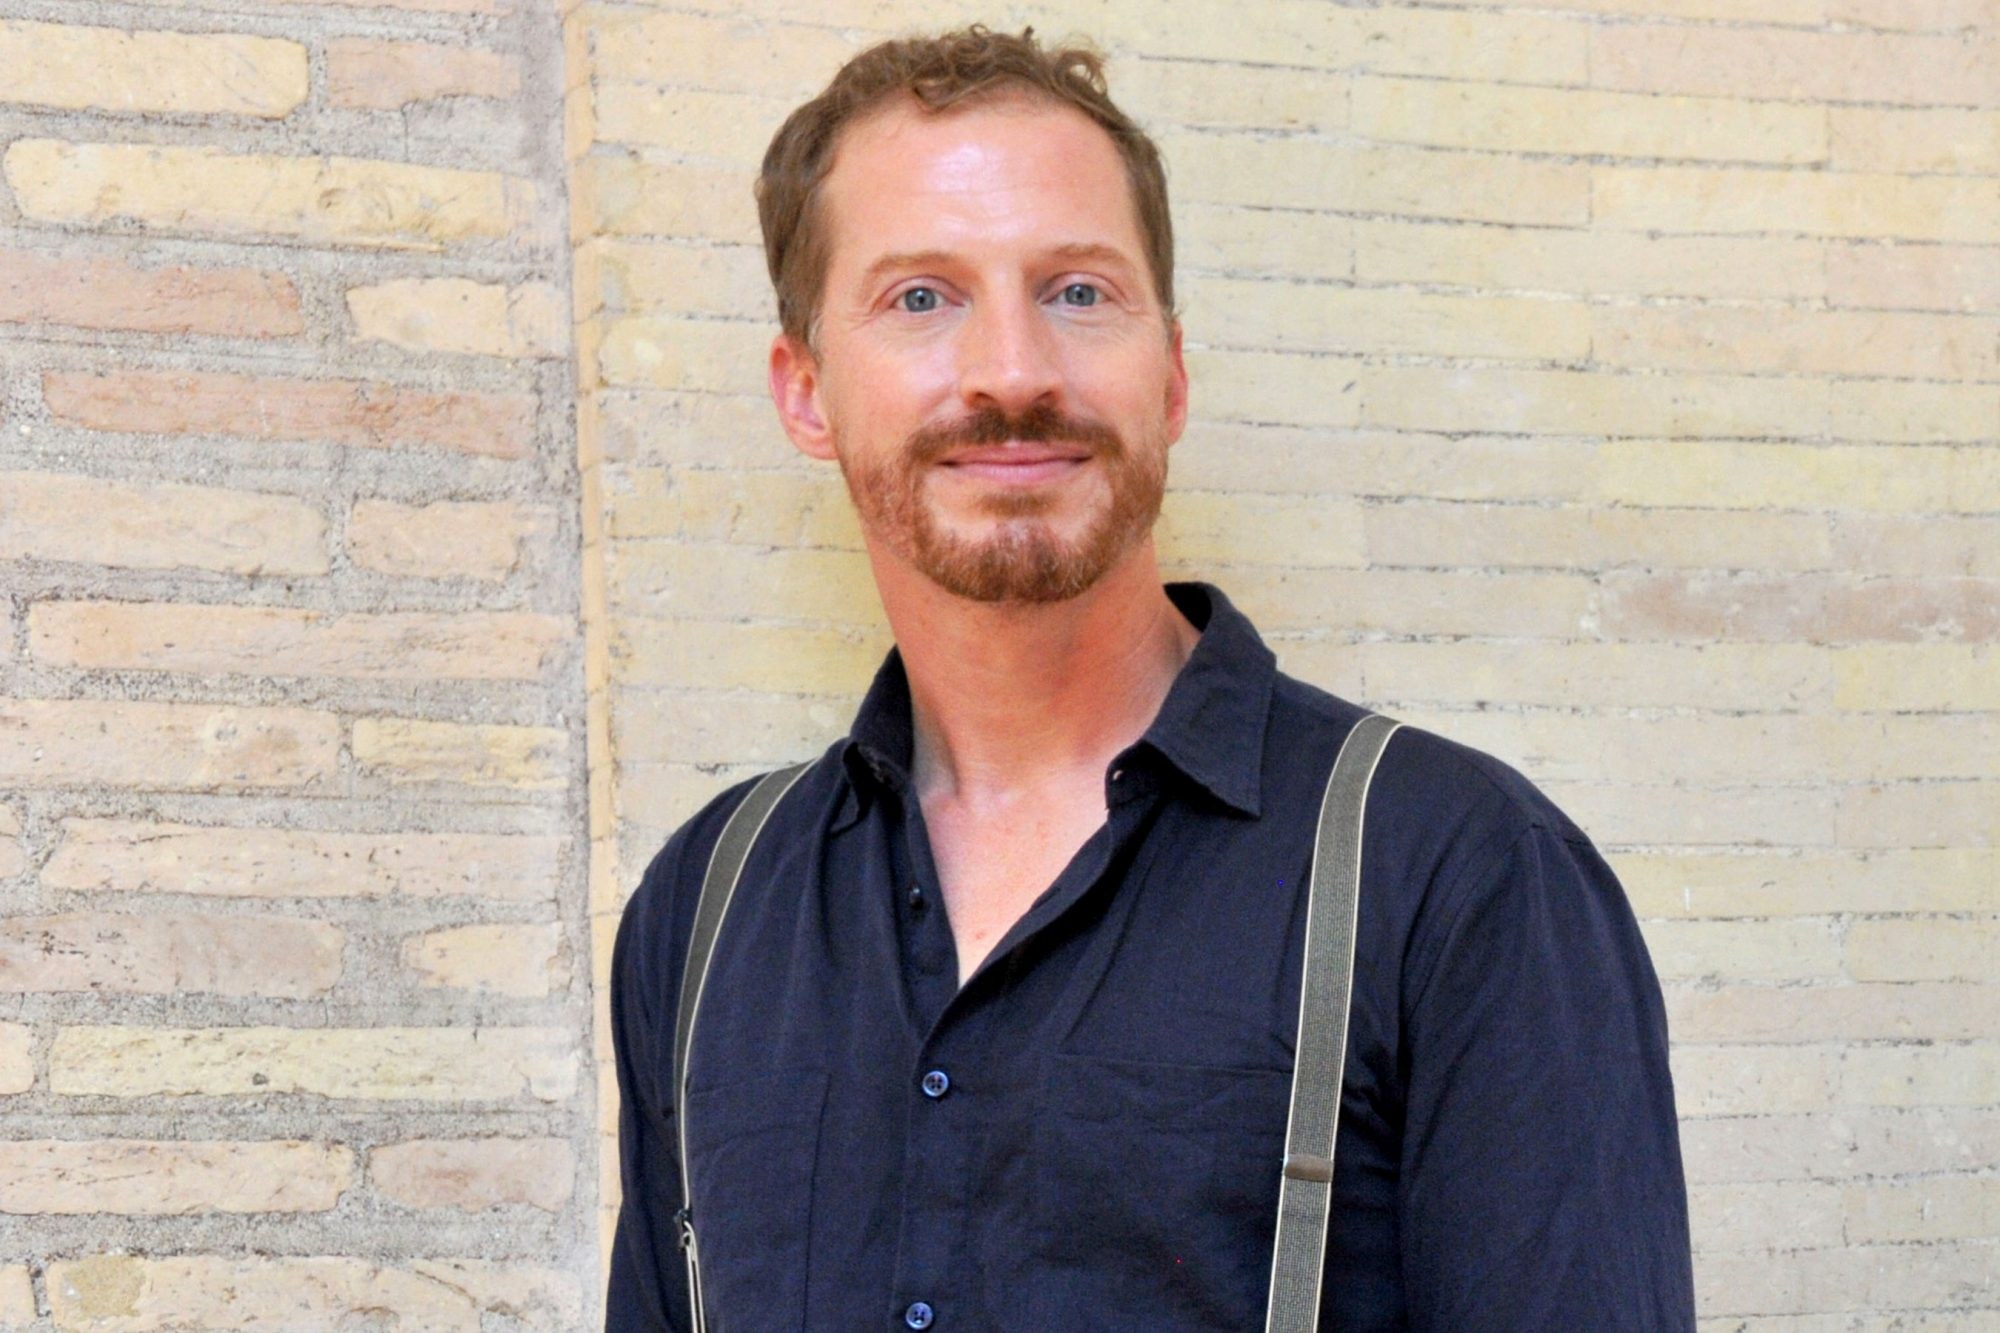 Andrew Sean Greer Portrayed At 'Festival Delle Letterature' In Rome